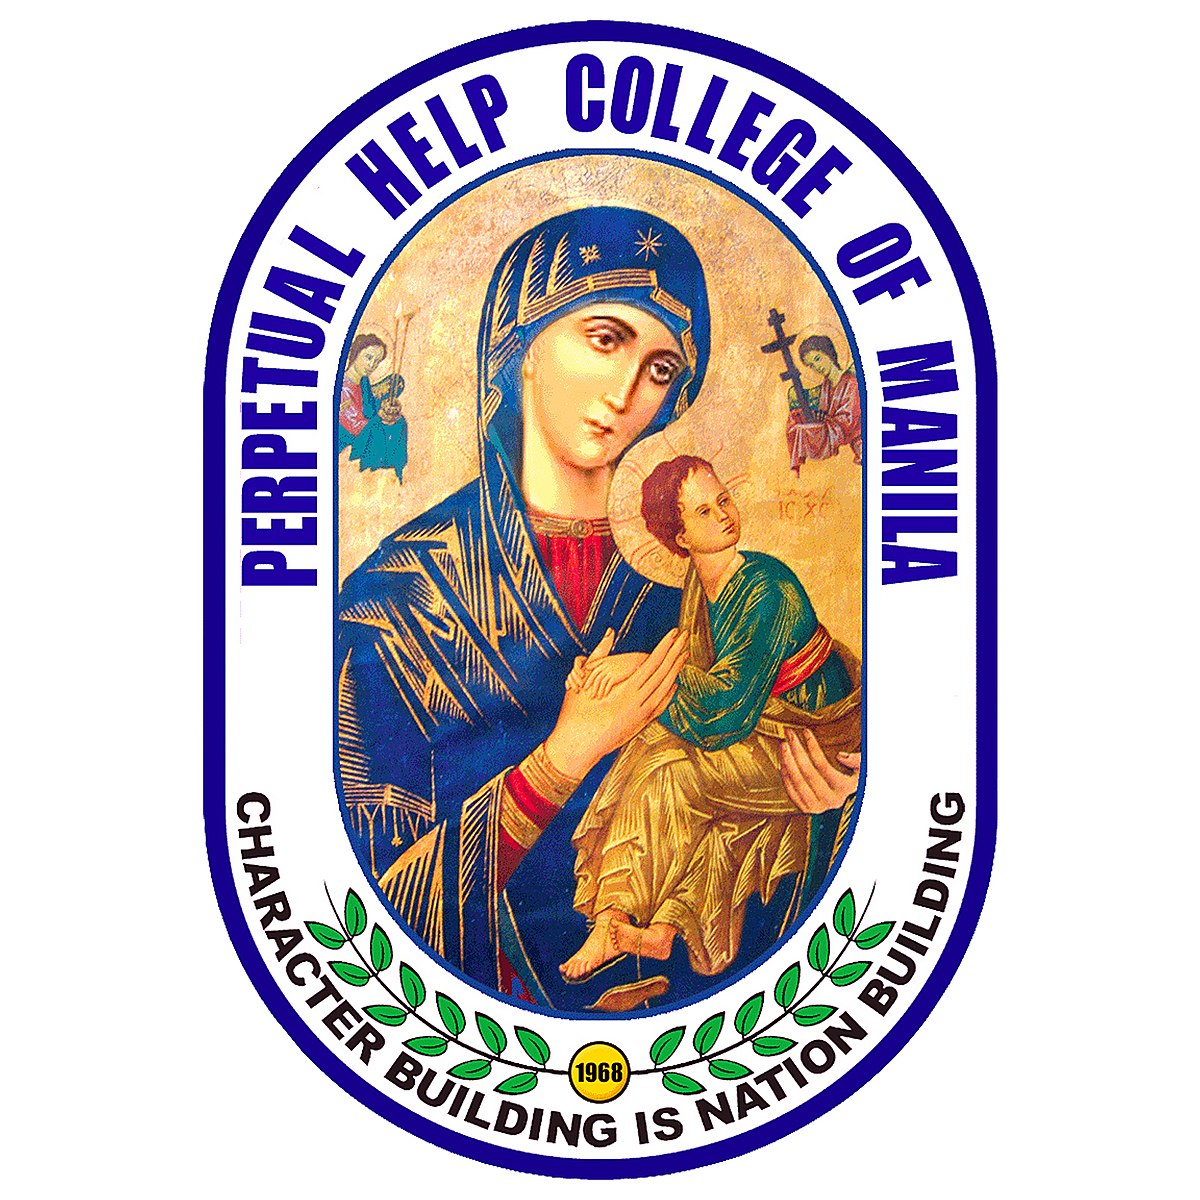 perpetual help college of manila wikipedia